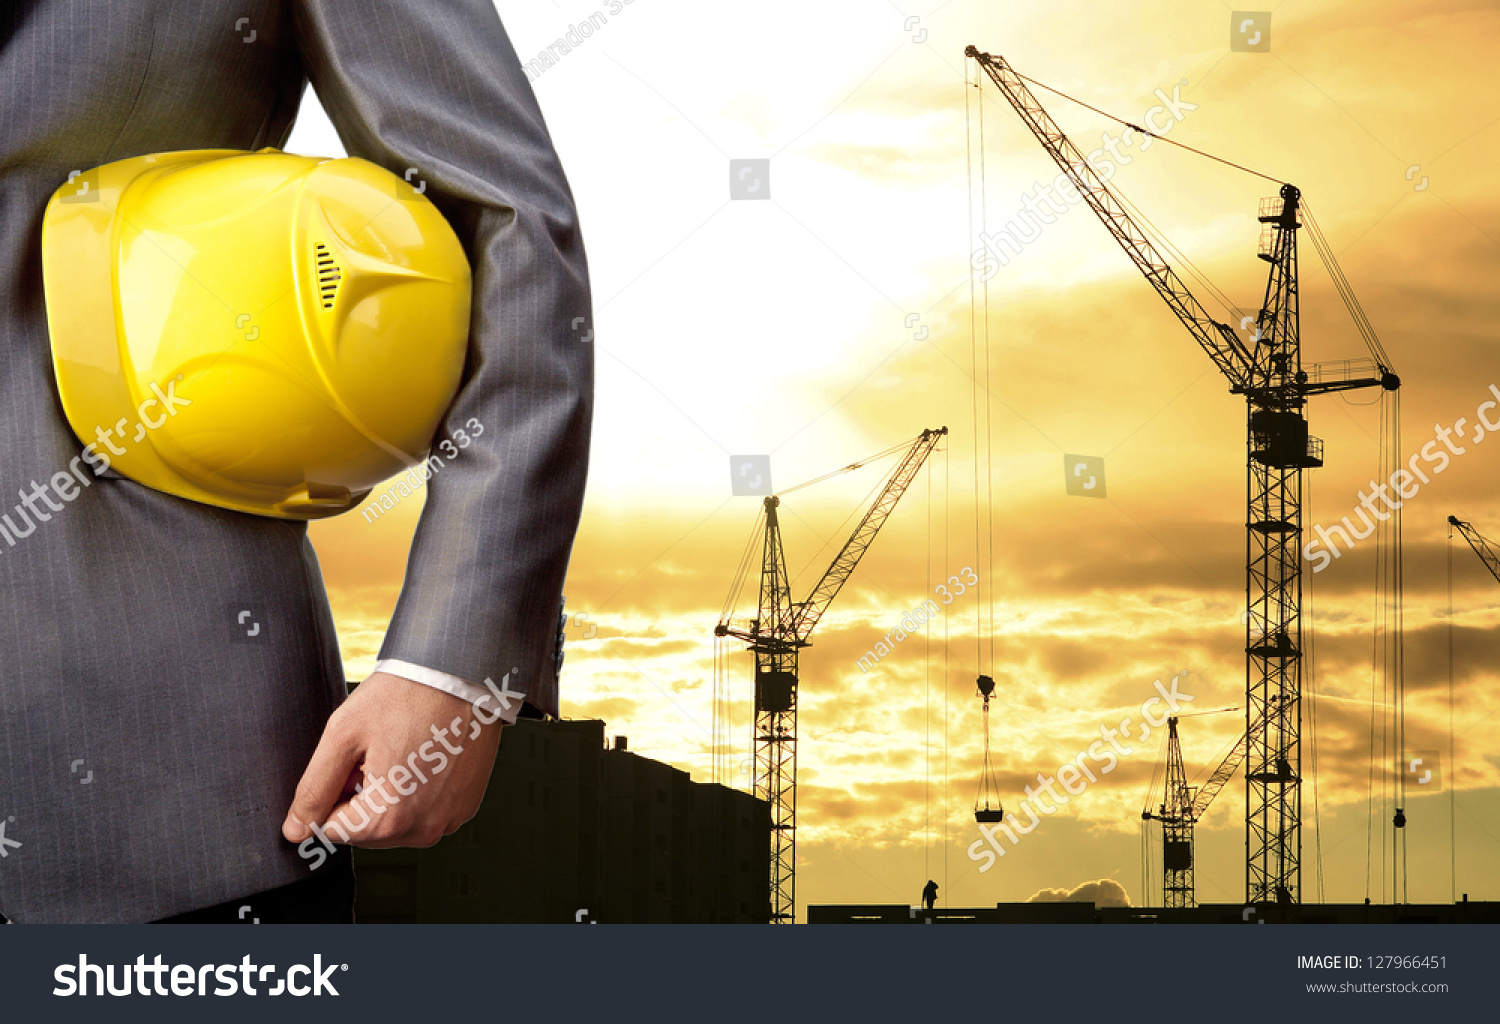 engineer holding yellow helmet for workers security on